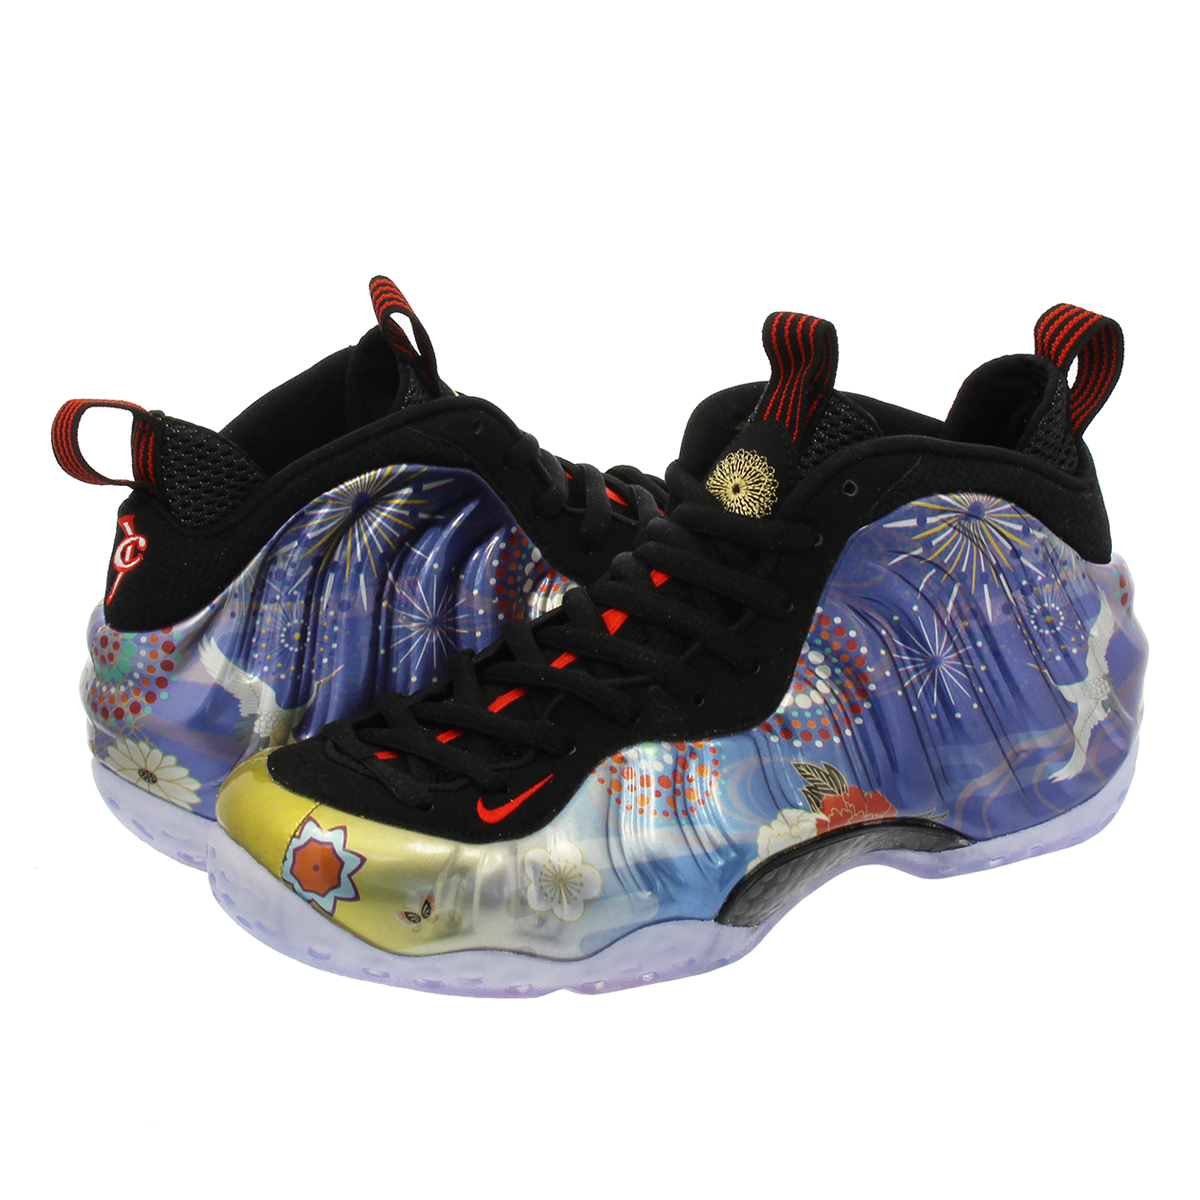 6ce56f8de39 NIKE AIR FOAMPOSITE ONE LNY QS ナイキフォームポジットワン LNY QS BLACK HABANERO RED  ao7541-006